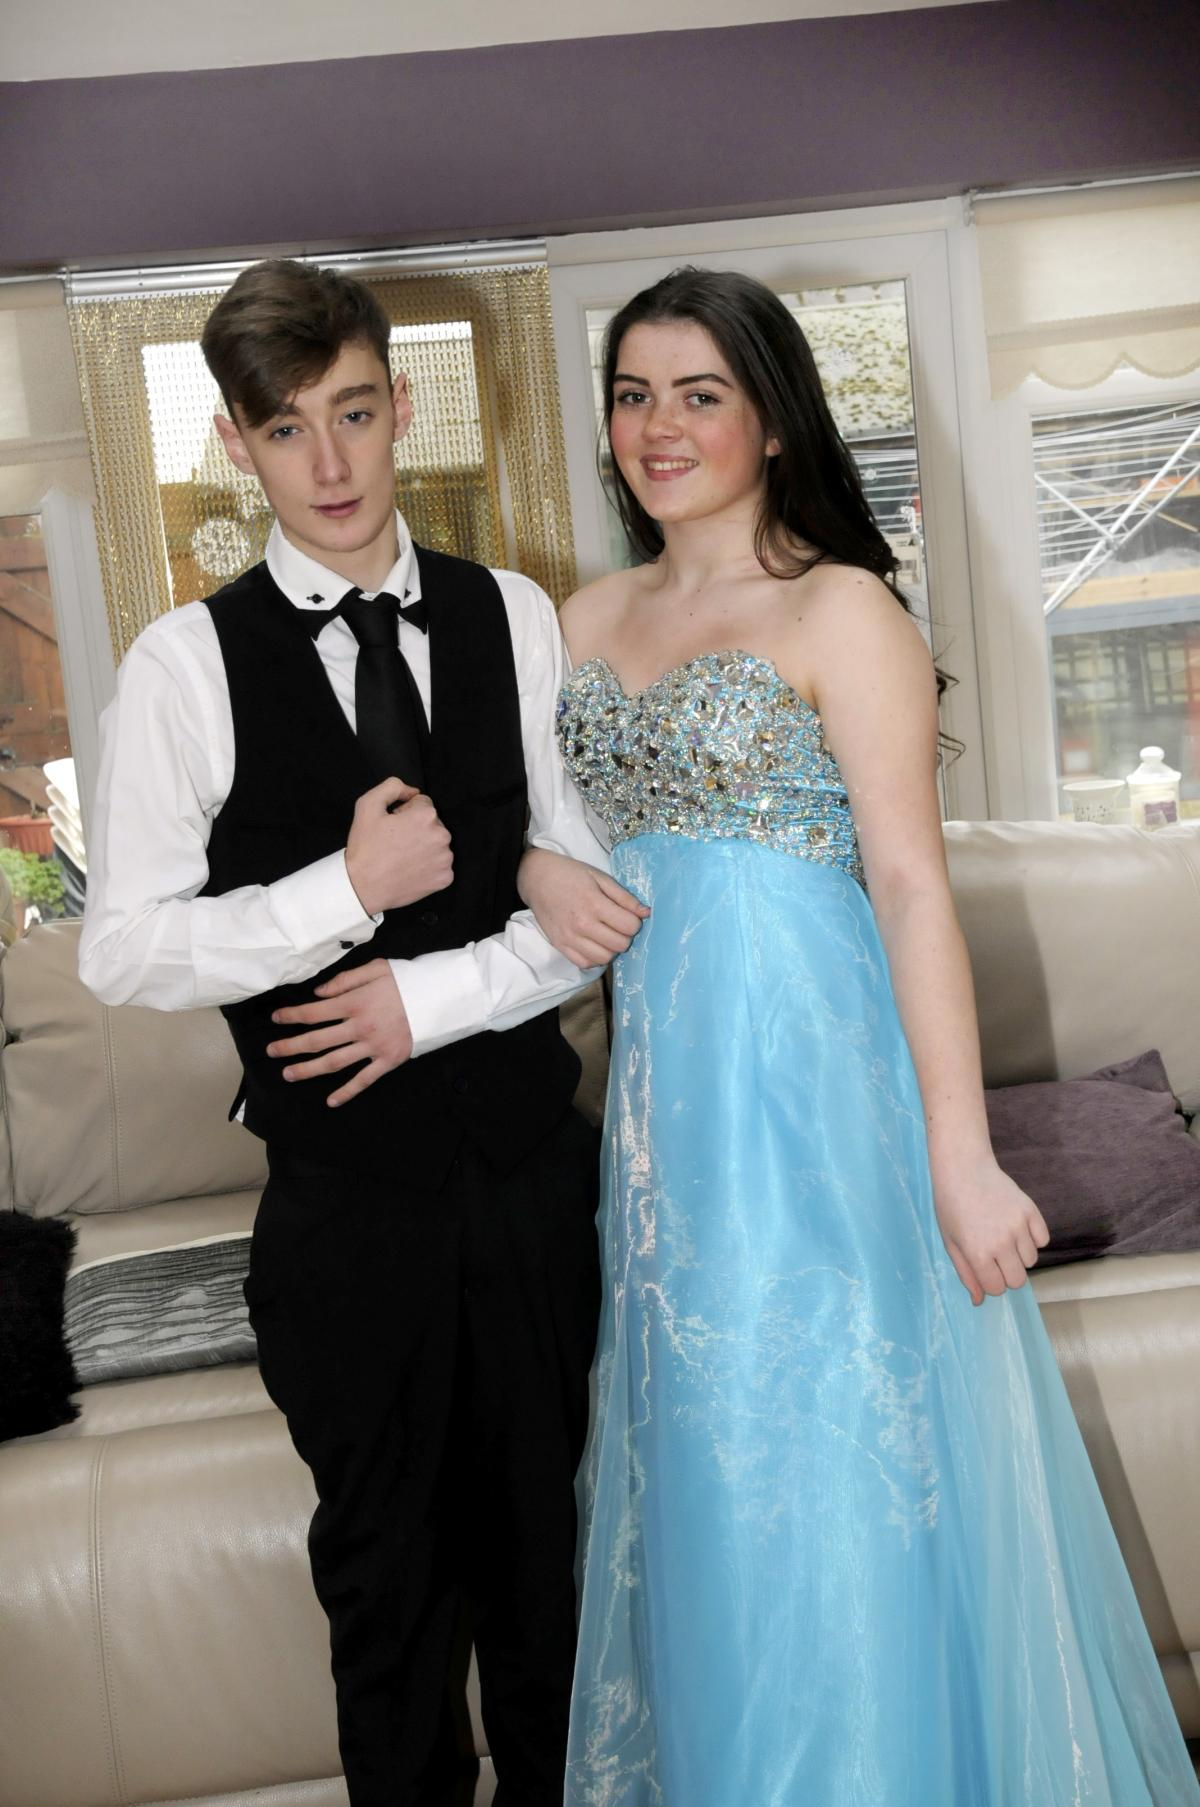 Mums offer Halton teenagers free prom outfits | Runcorn and Widnes World